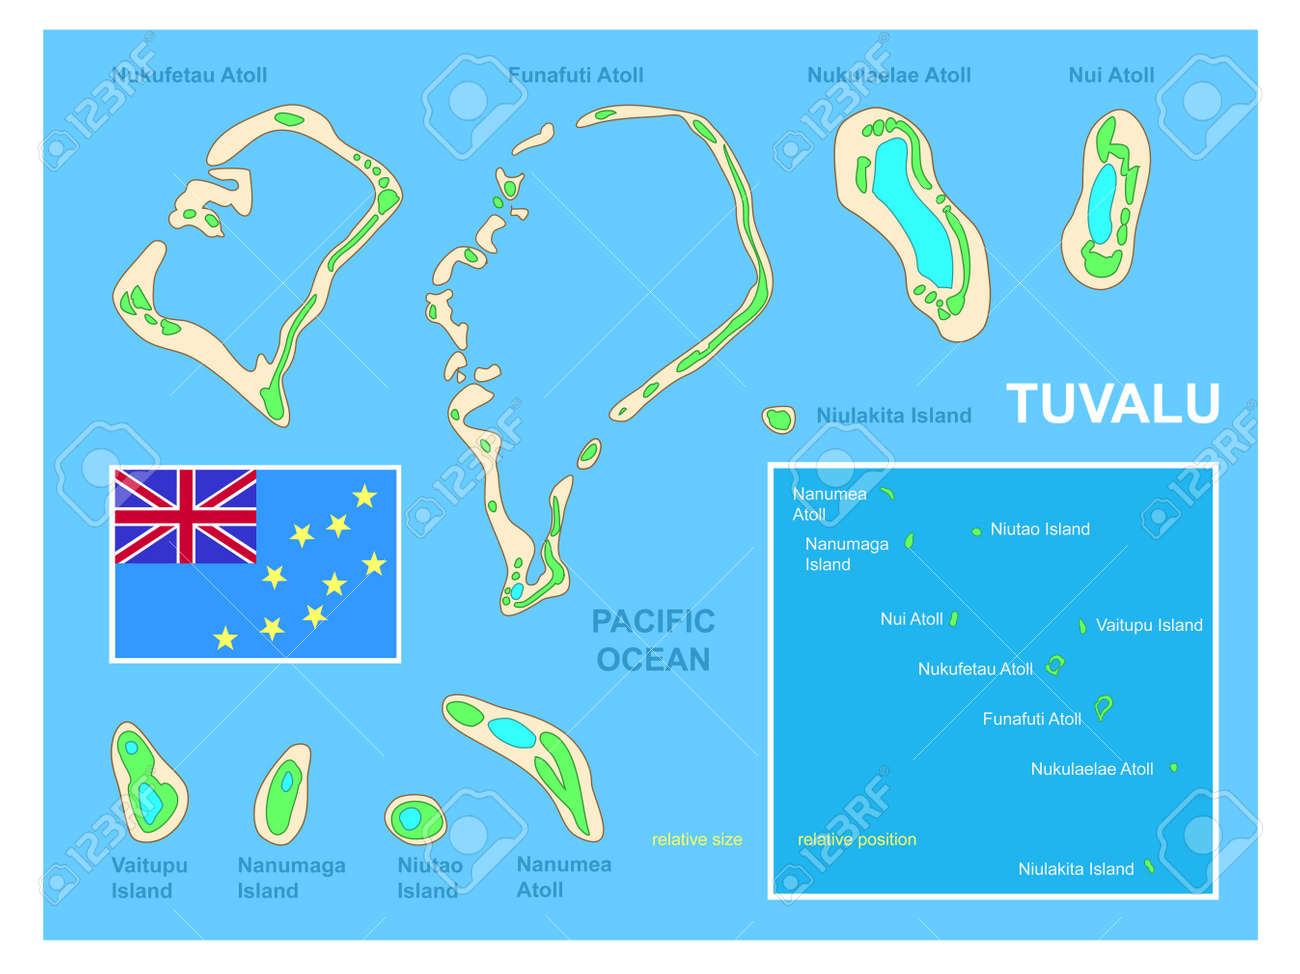 Tuvalu Map And Flag Royalty Free Cliparts Vectors And Stock - Tuvalu map